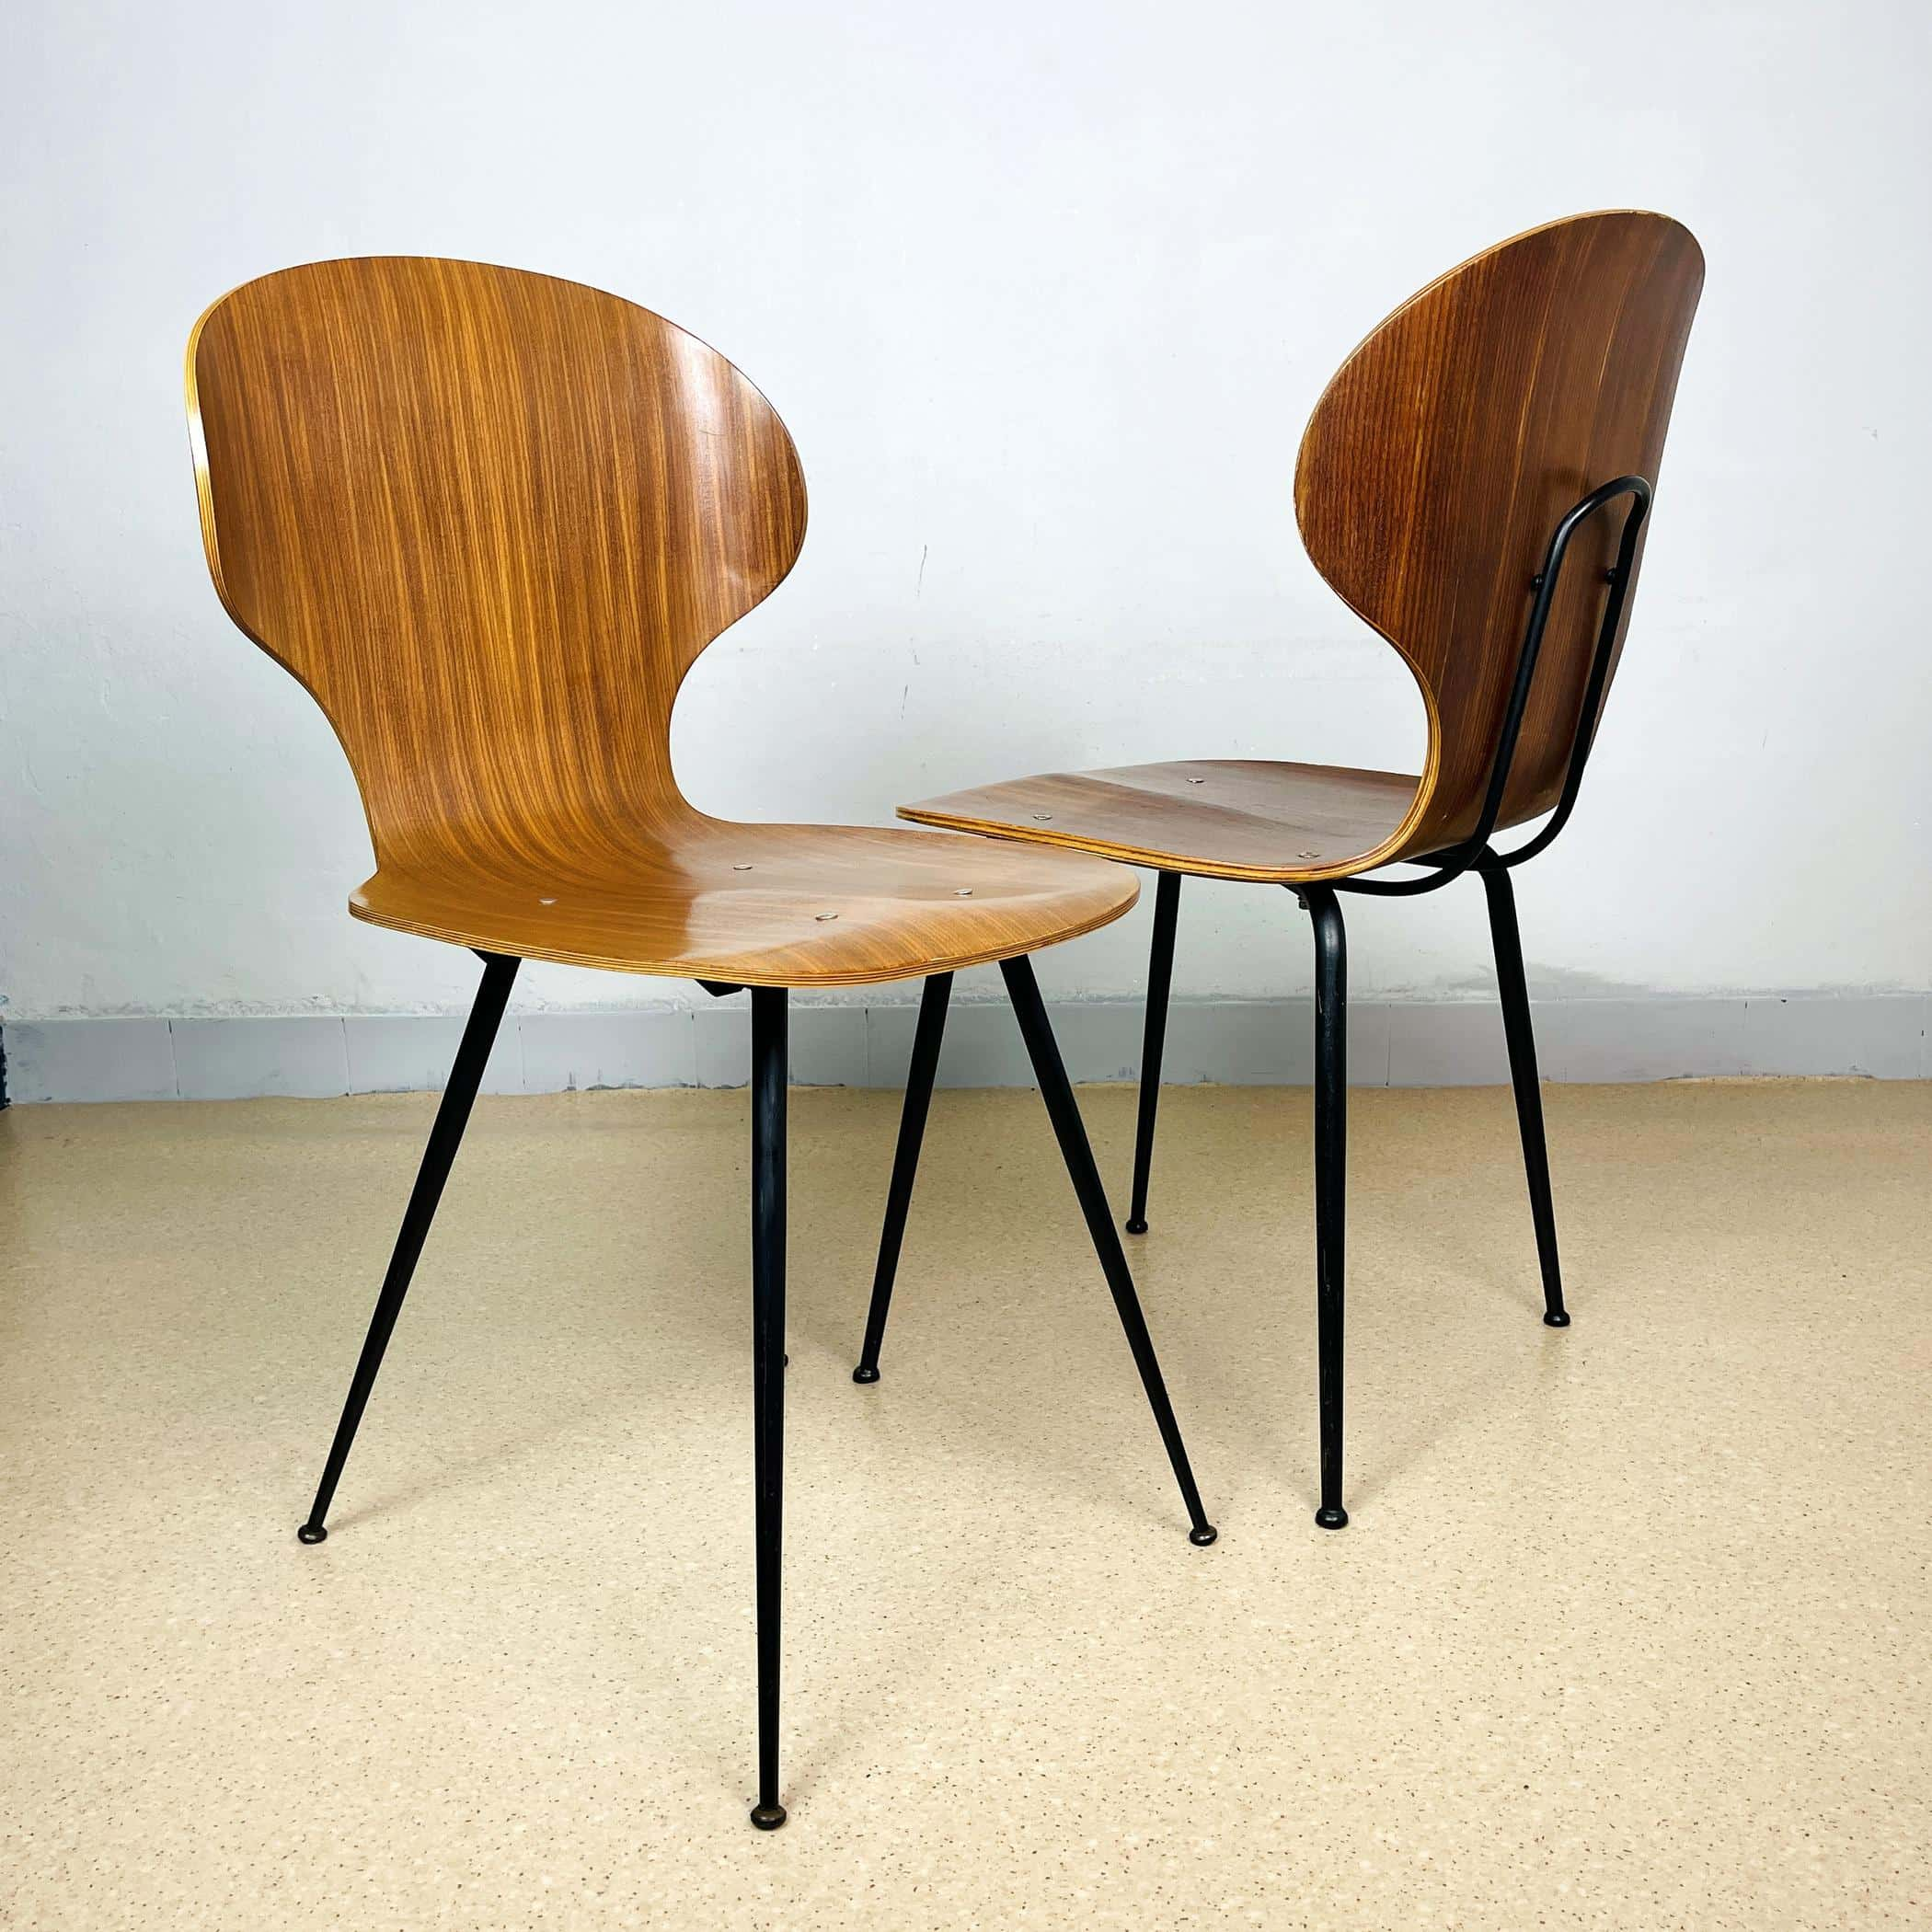 1 of 2 Mid-century dining chair Lulli Chairs by Carlo Ratti for Industria Legni Curvati Lissone Italy 1970s